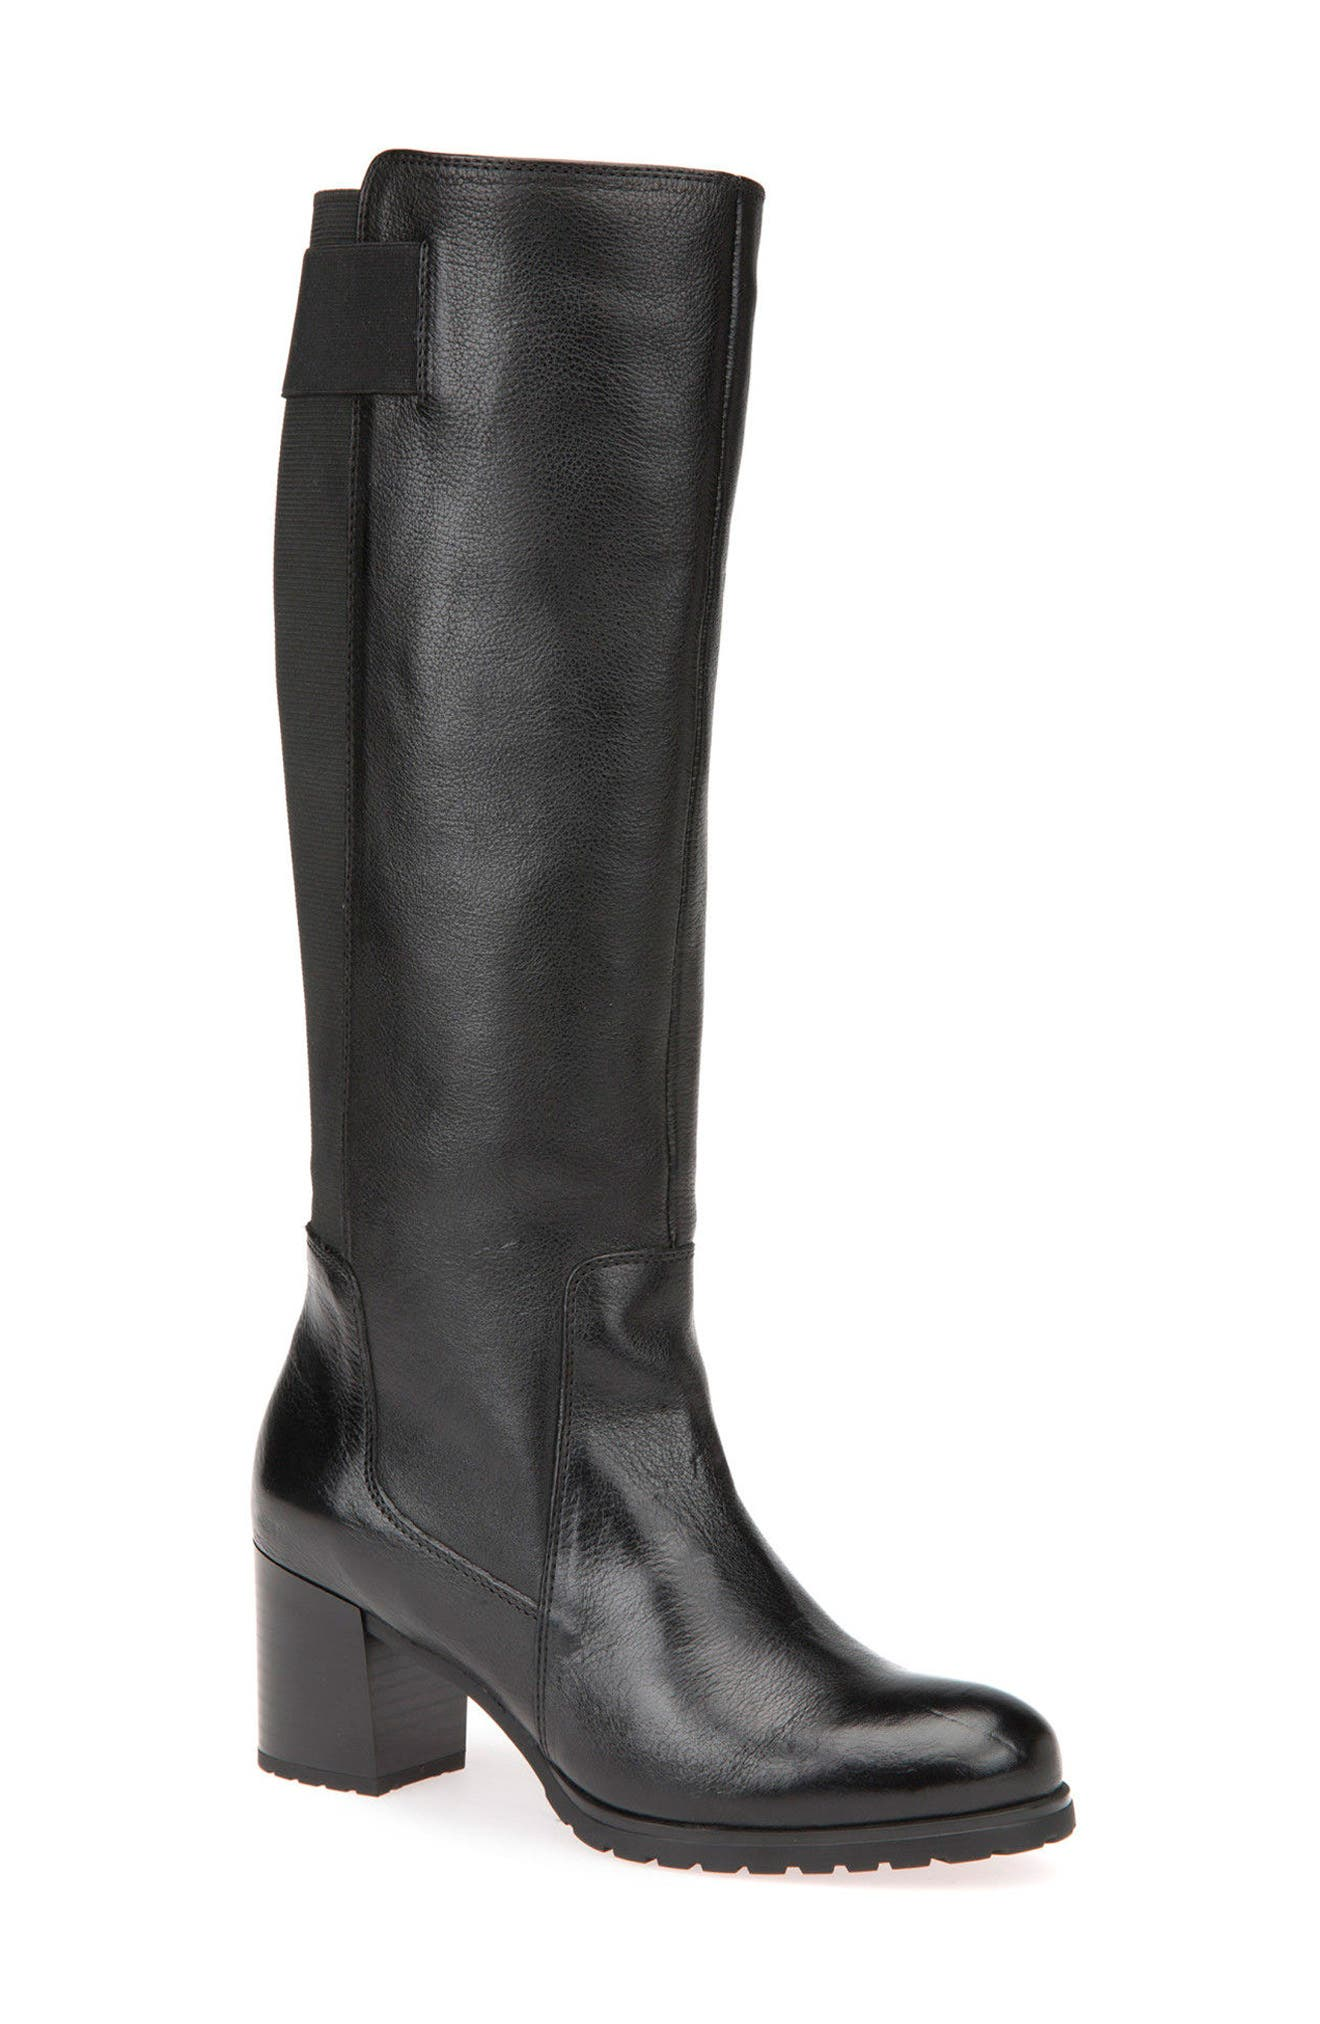 Main Image - Geox Newlise Boot (Women)